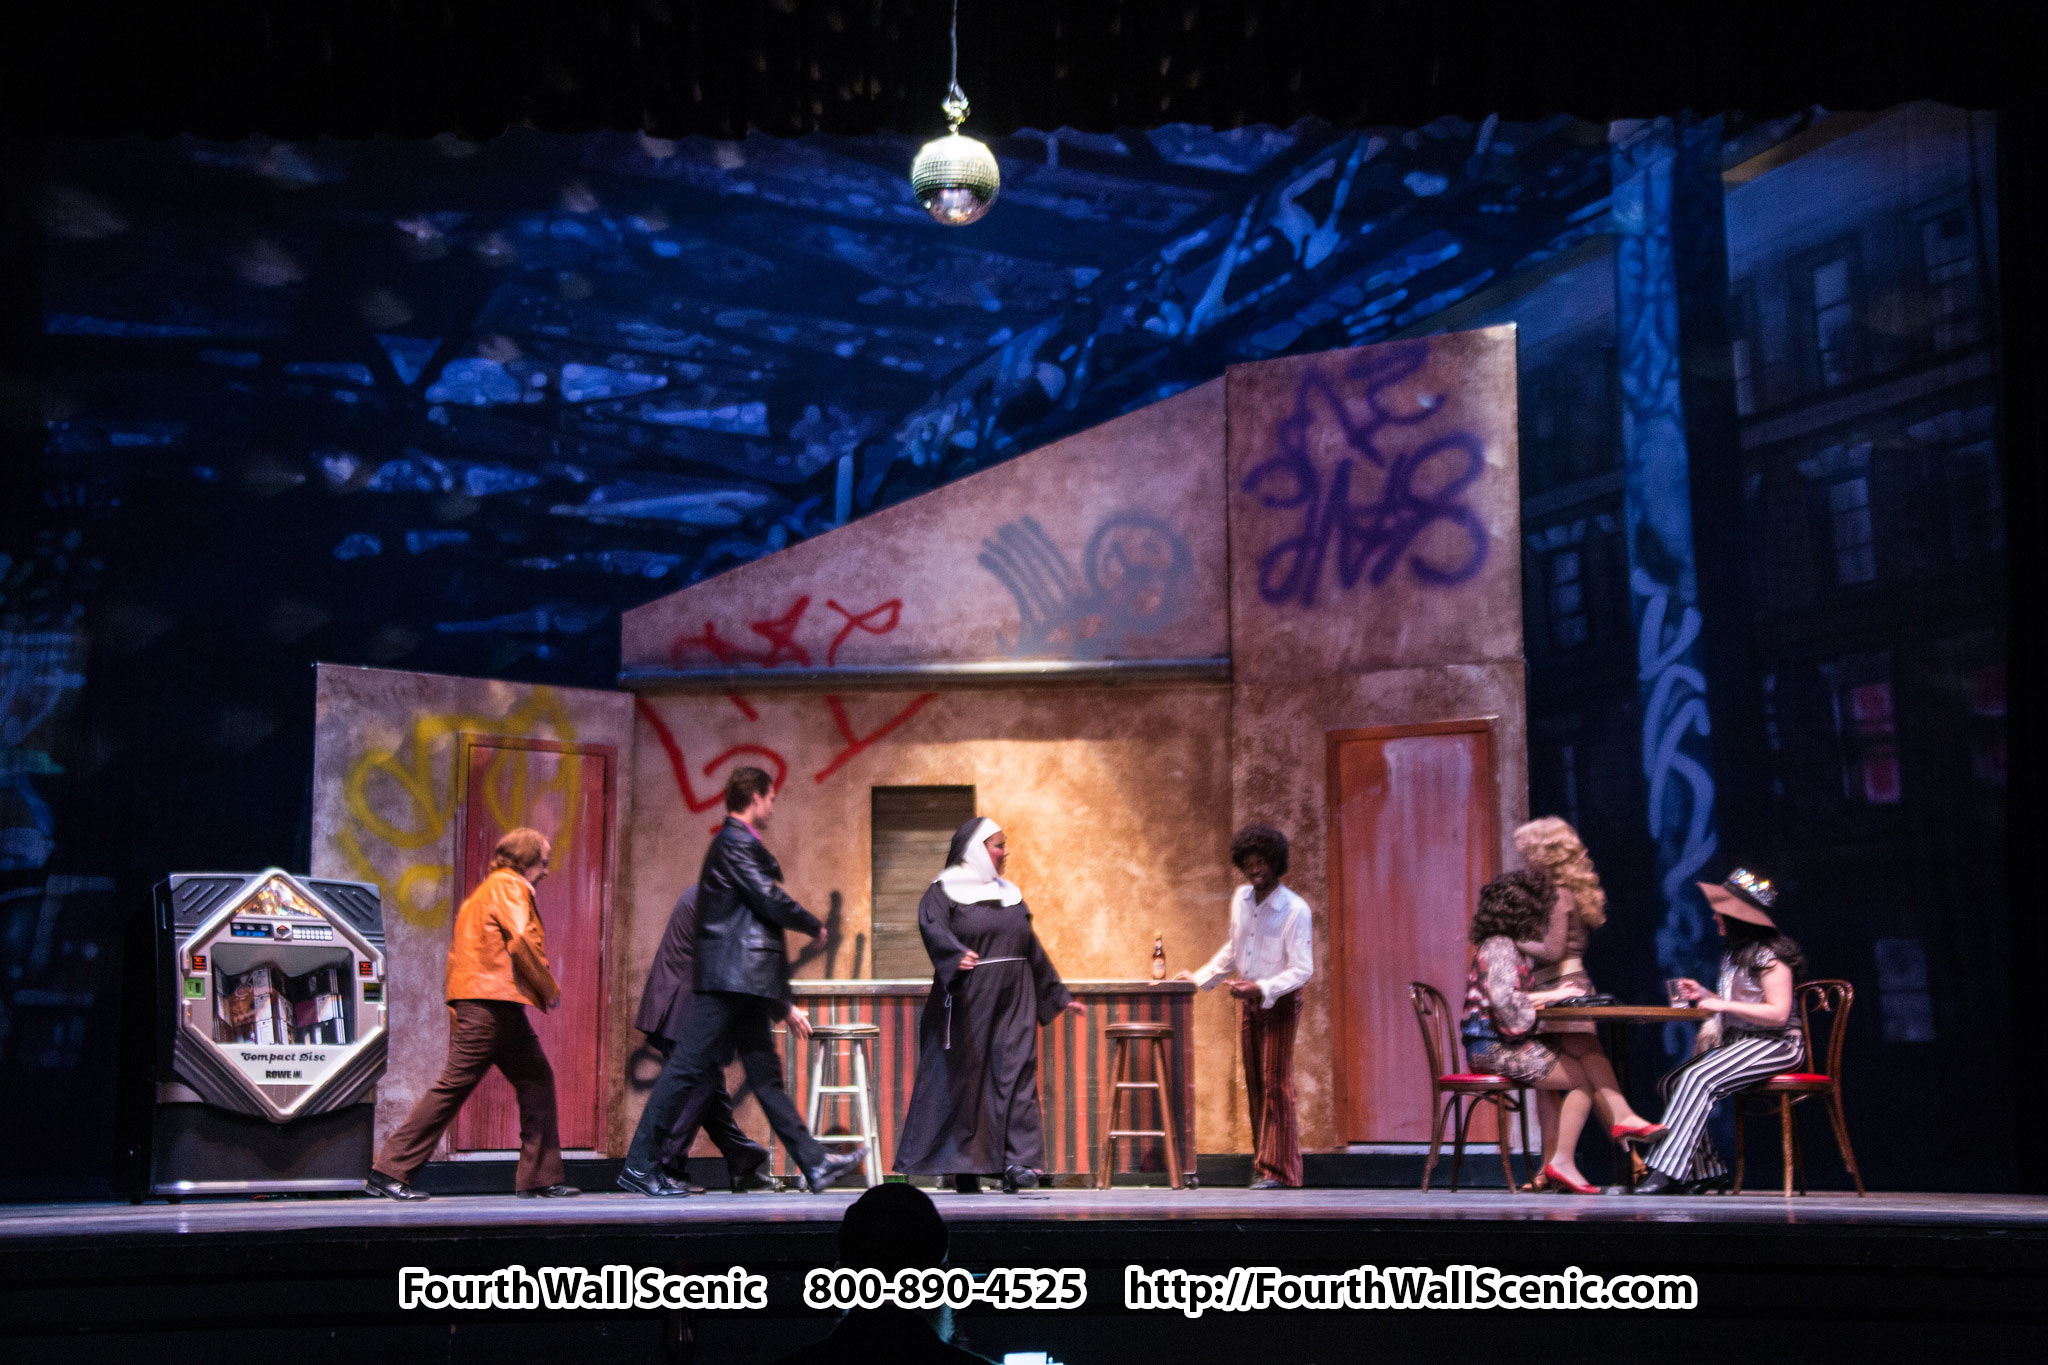 Sister Act Rental Set - Fourth Wall Scenic - 800-890-4525